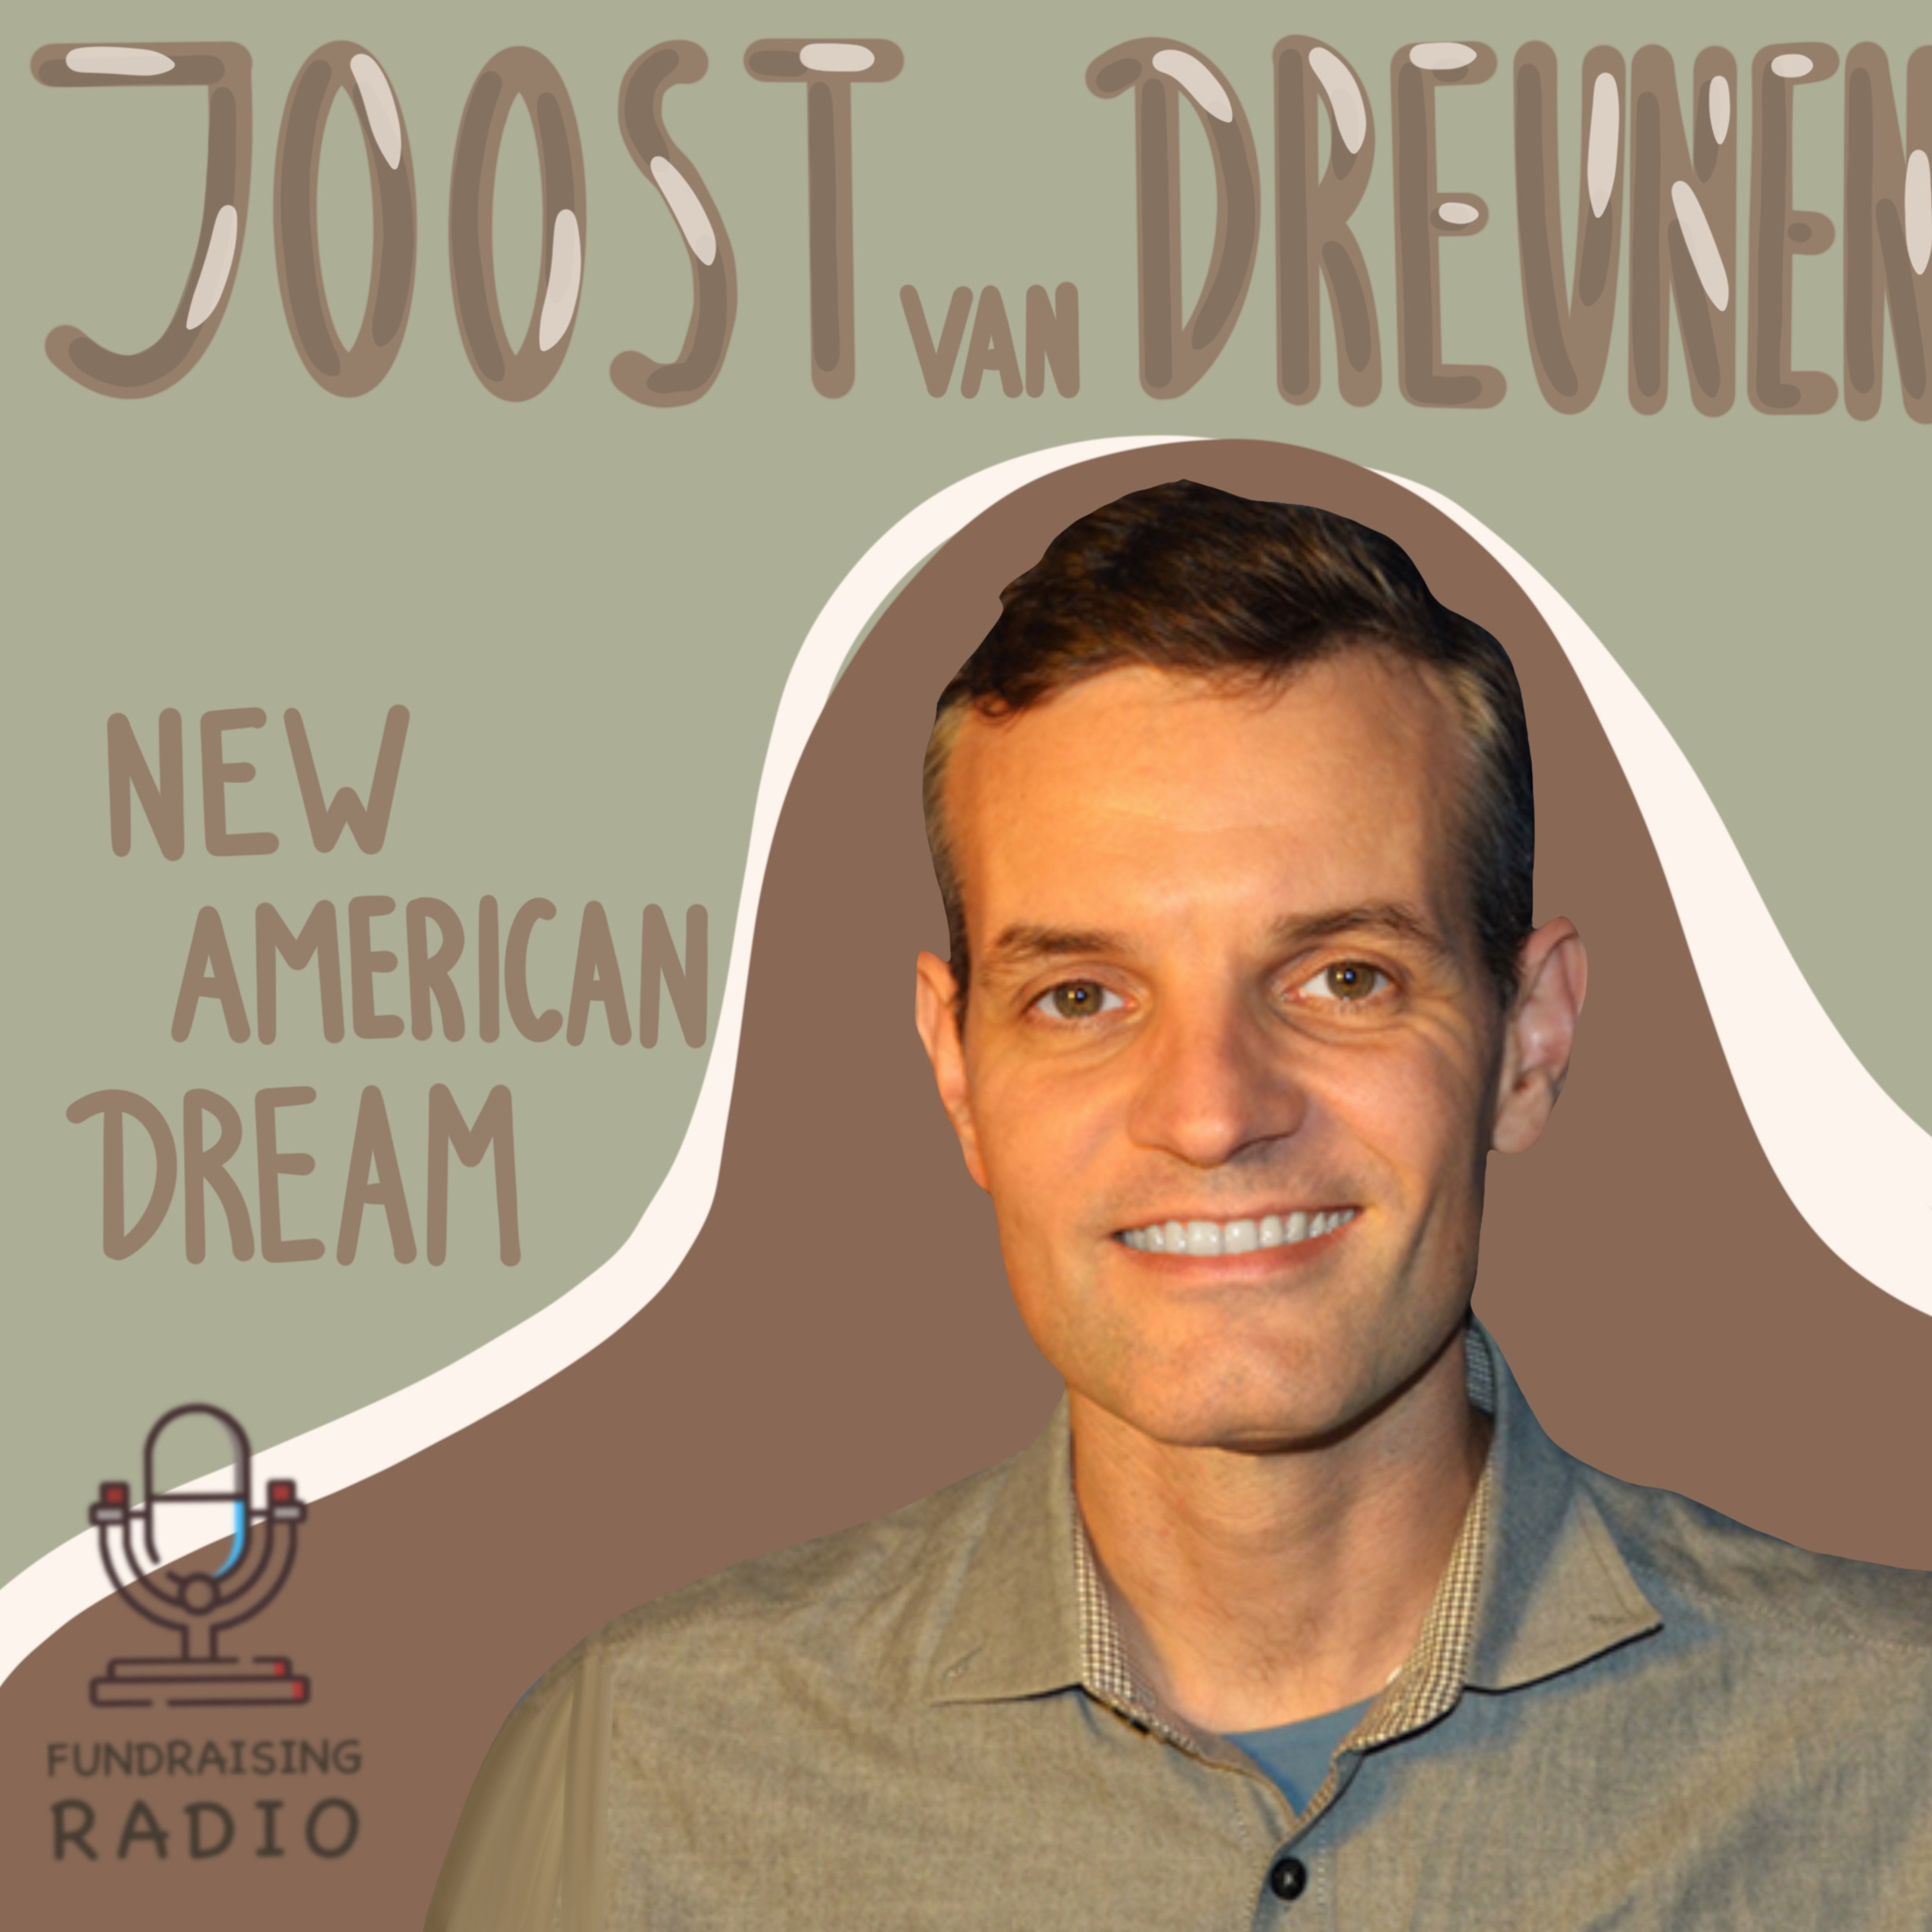 The new American dream - how does it affect startup field? By Joost van Dreunen.